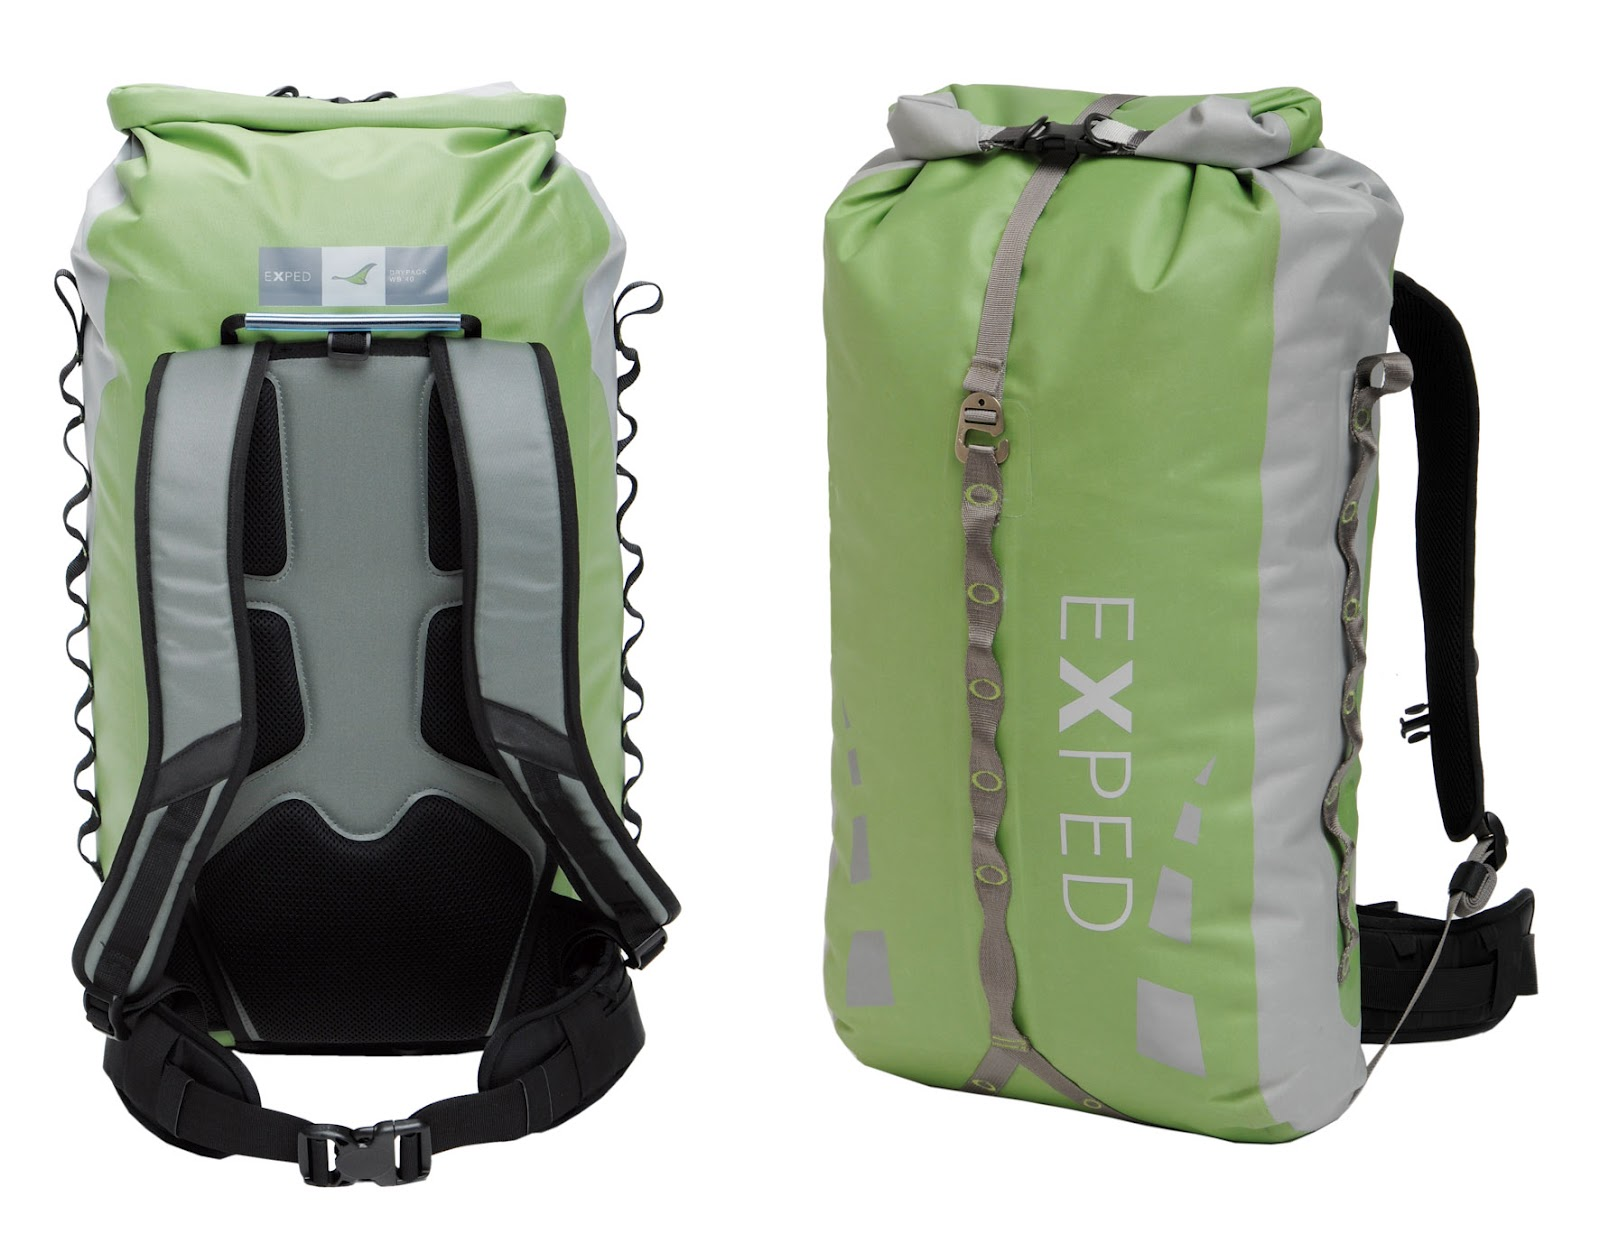 d1a8c078e1 Waterproof Packing Made Easy – Exped Torrent 50